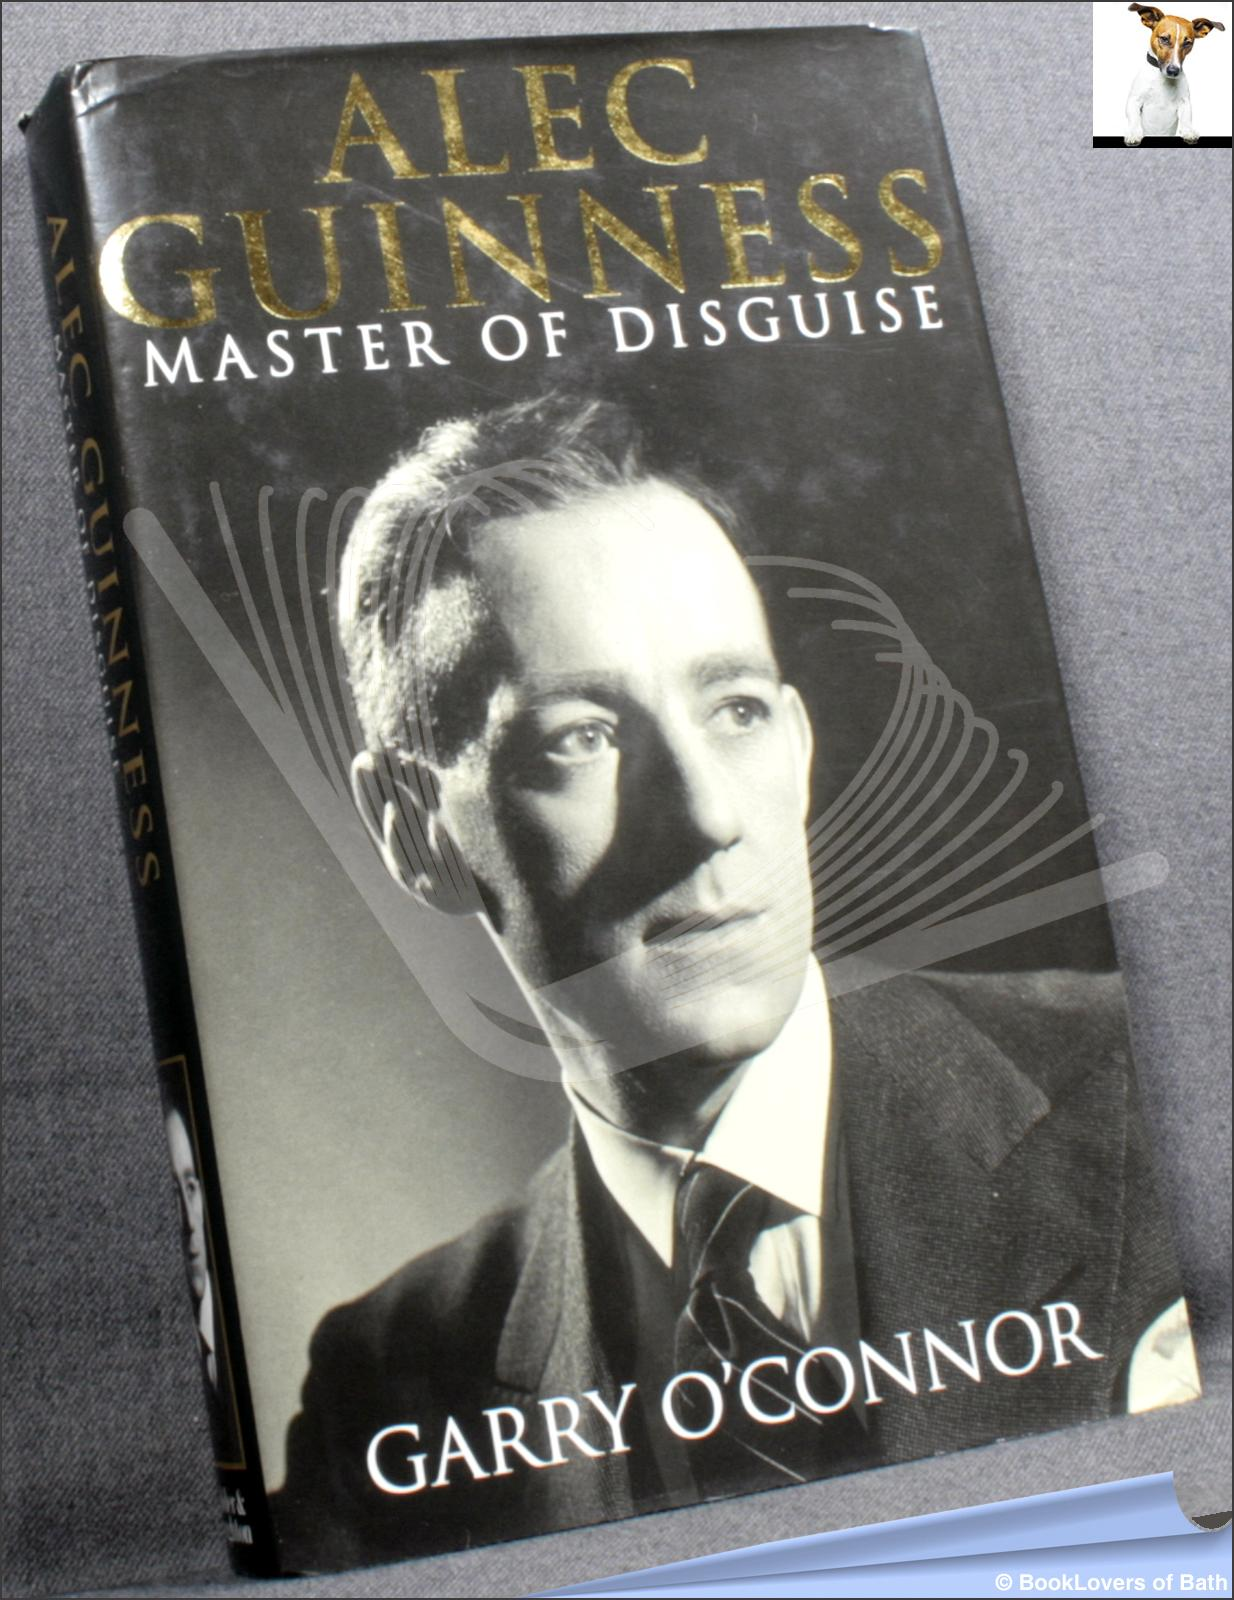 Alec Guiness: Master of Disguise - Garry O'Connor